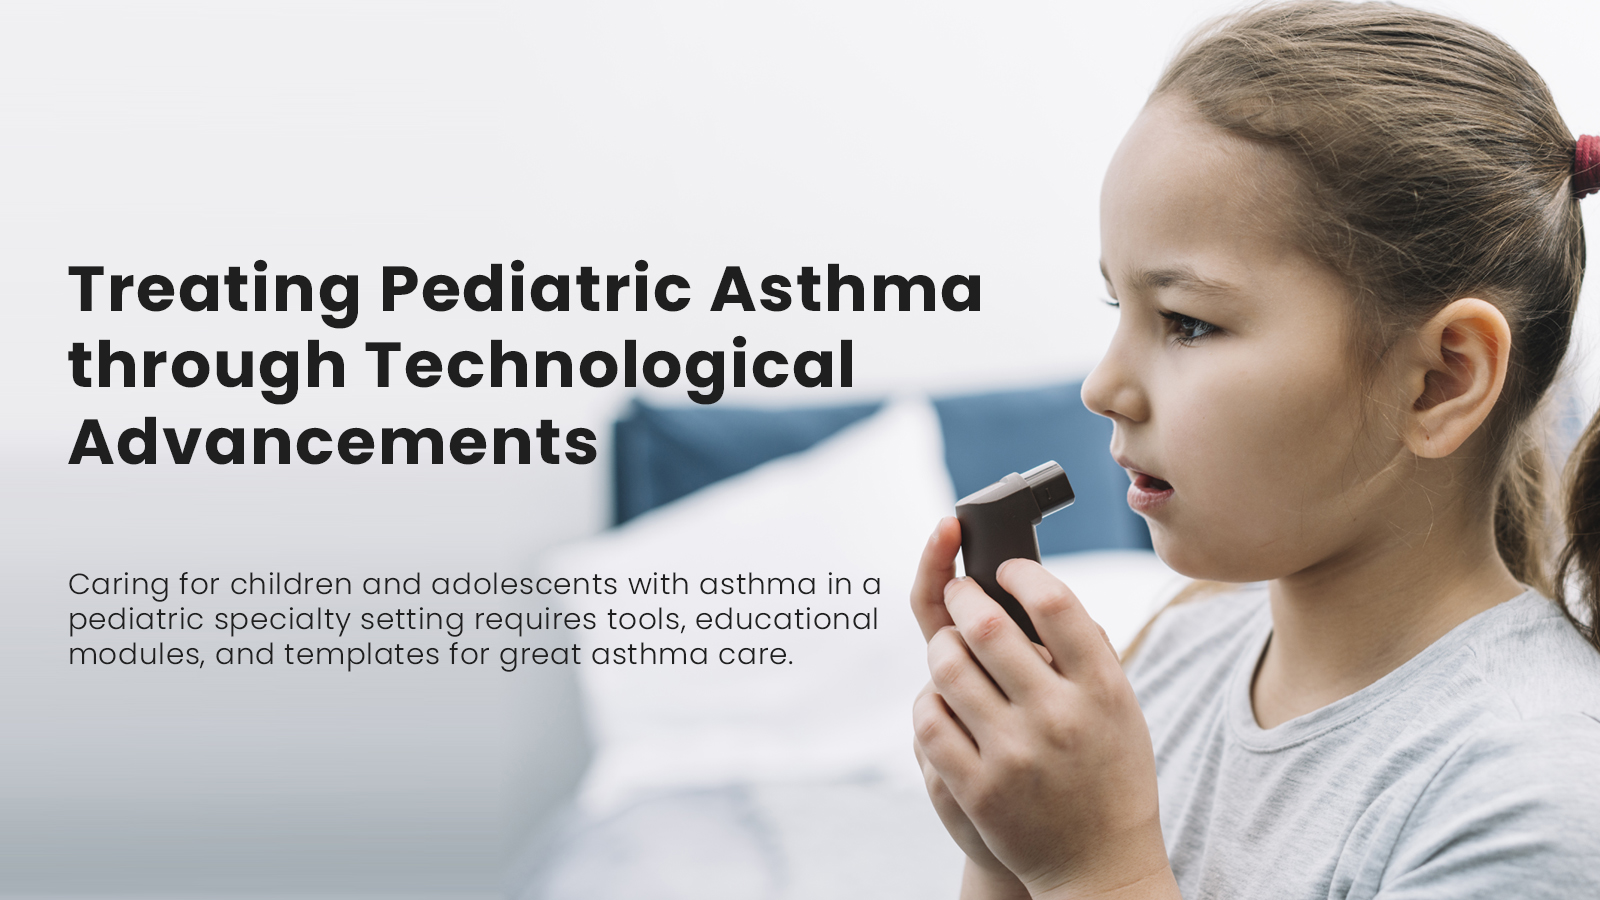 Treating Pediatric Asthma through Technological Advancements